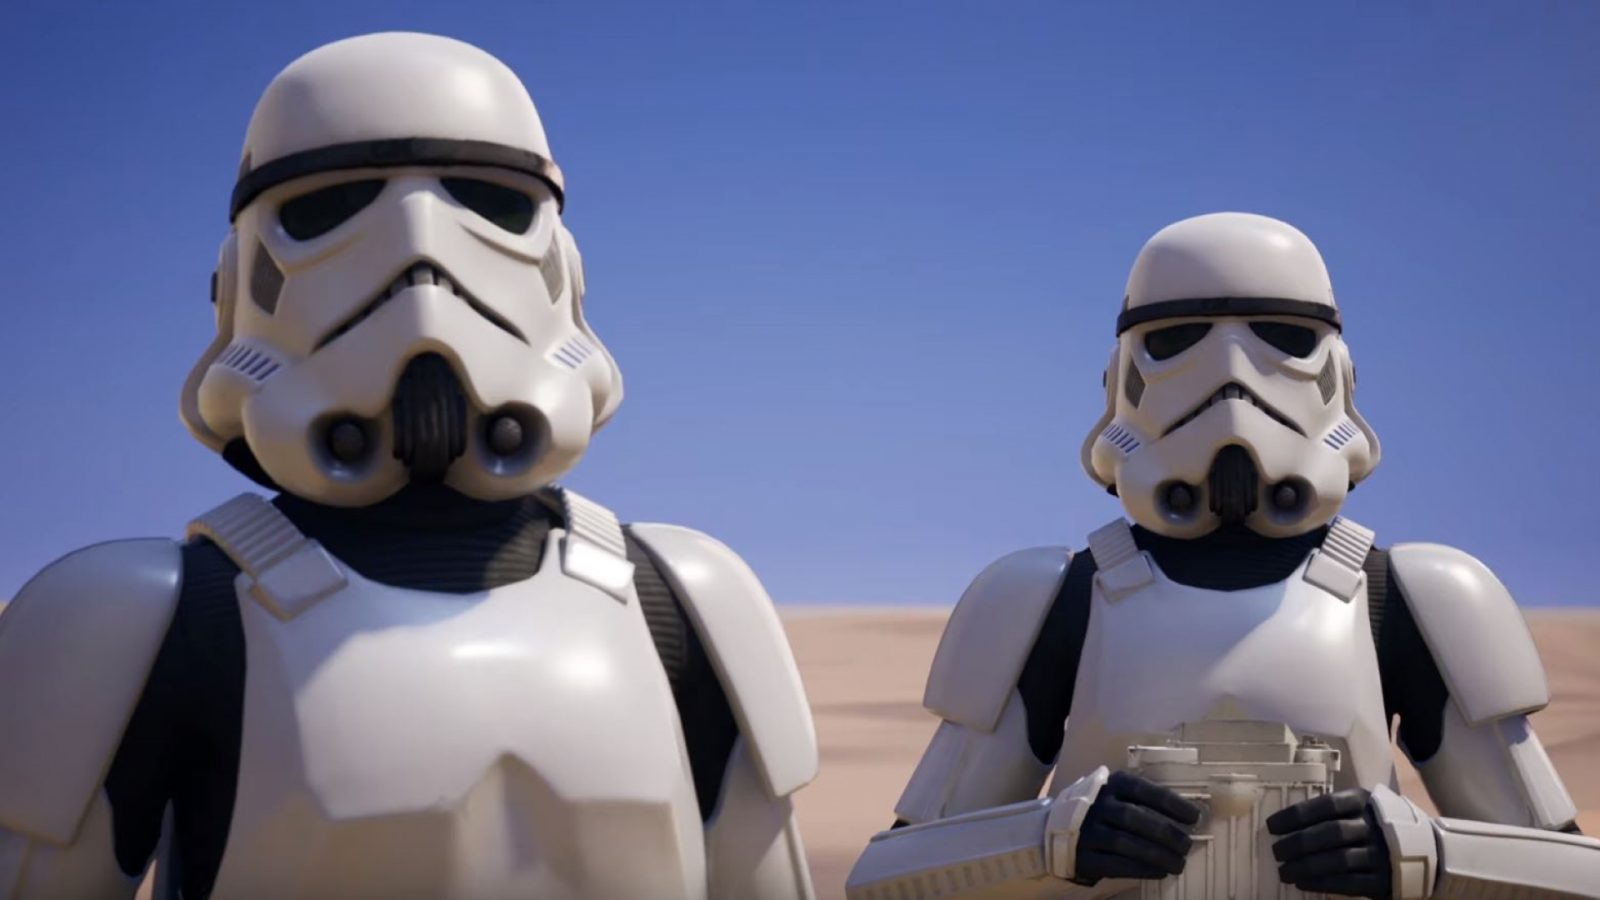 Fortnite will show a scene from Star Wars: The Rise of Skywalker next weekend